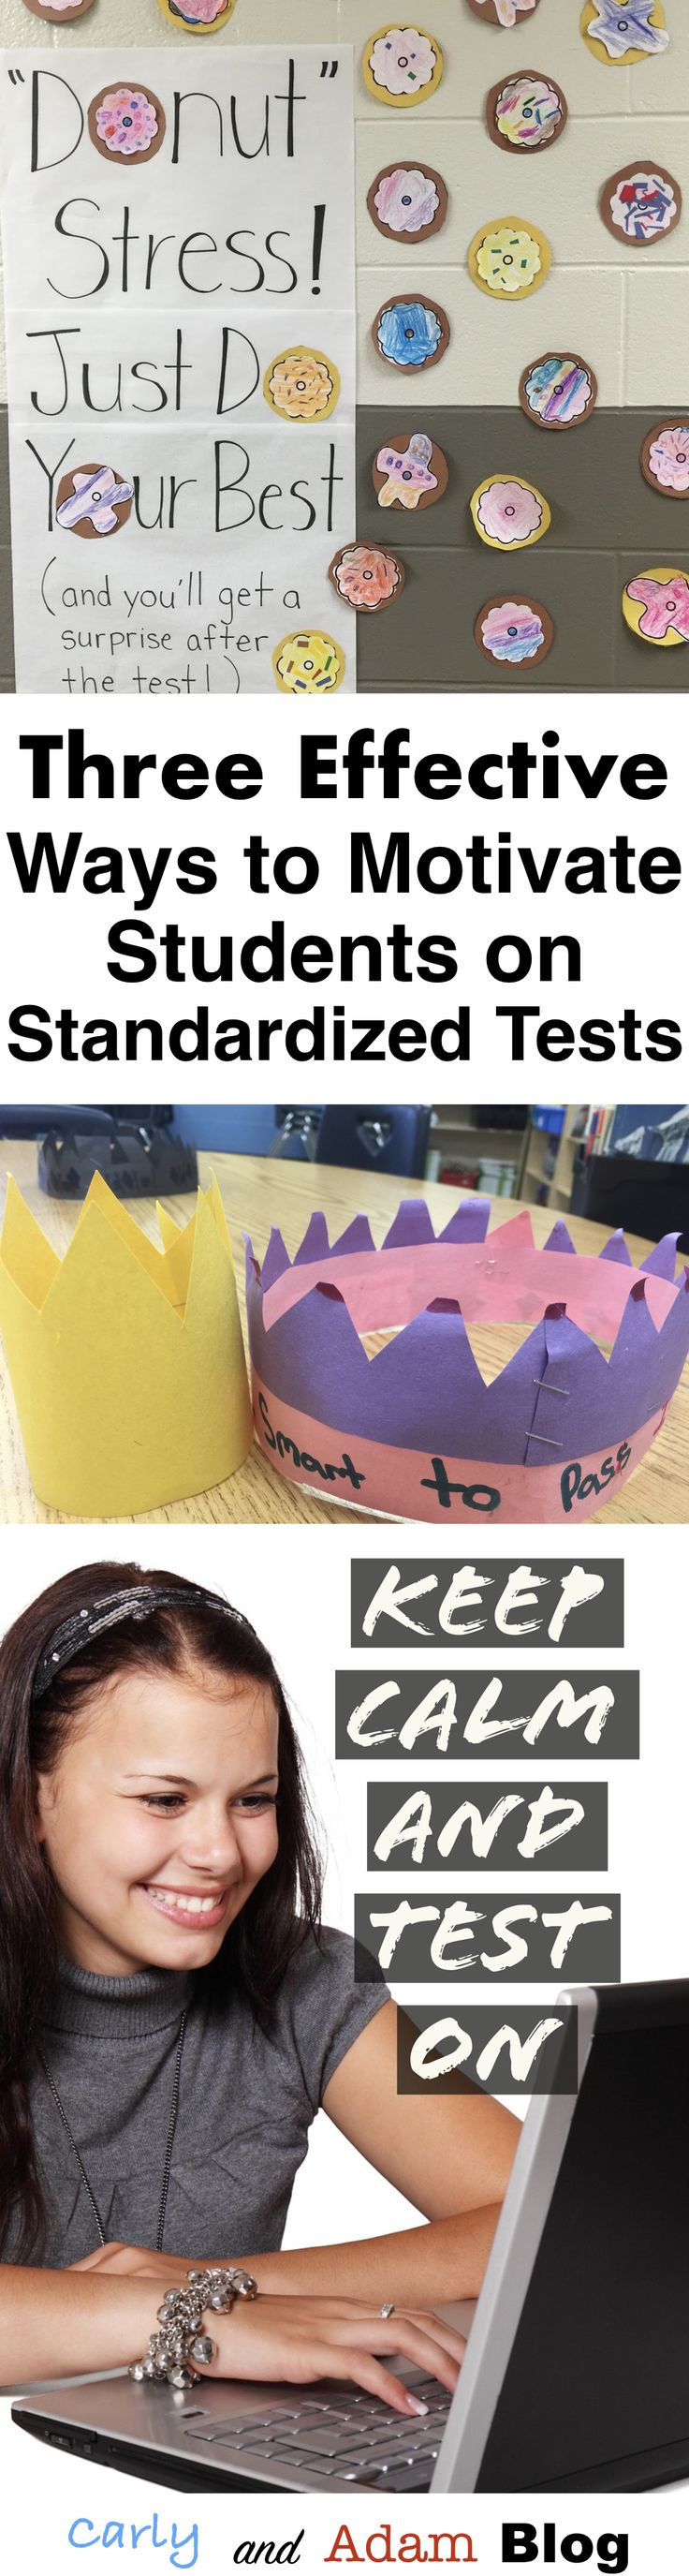 Helpful tips for investing students in standardized testing! Three Effective Ways to Motivate Students on Standardized Tests (Carly and Adam Blog)